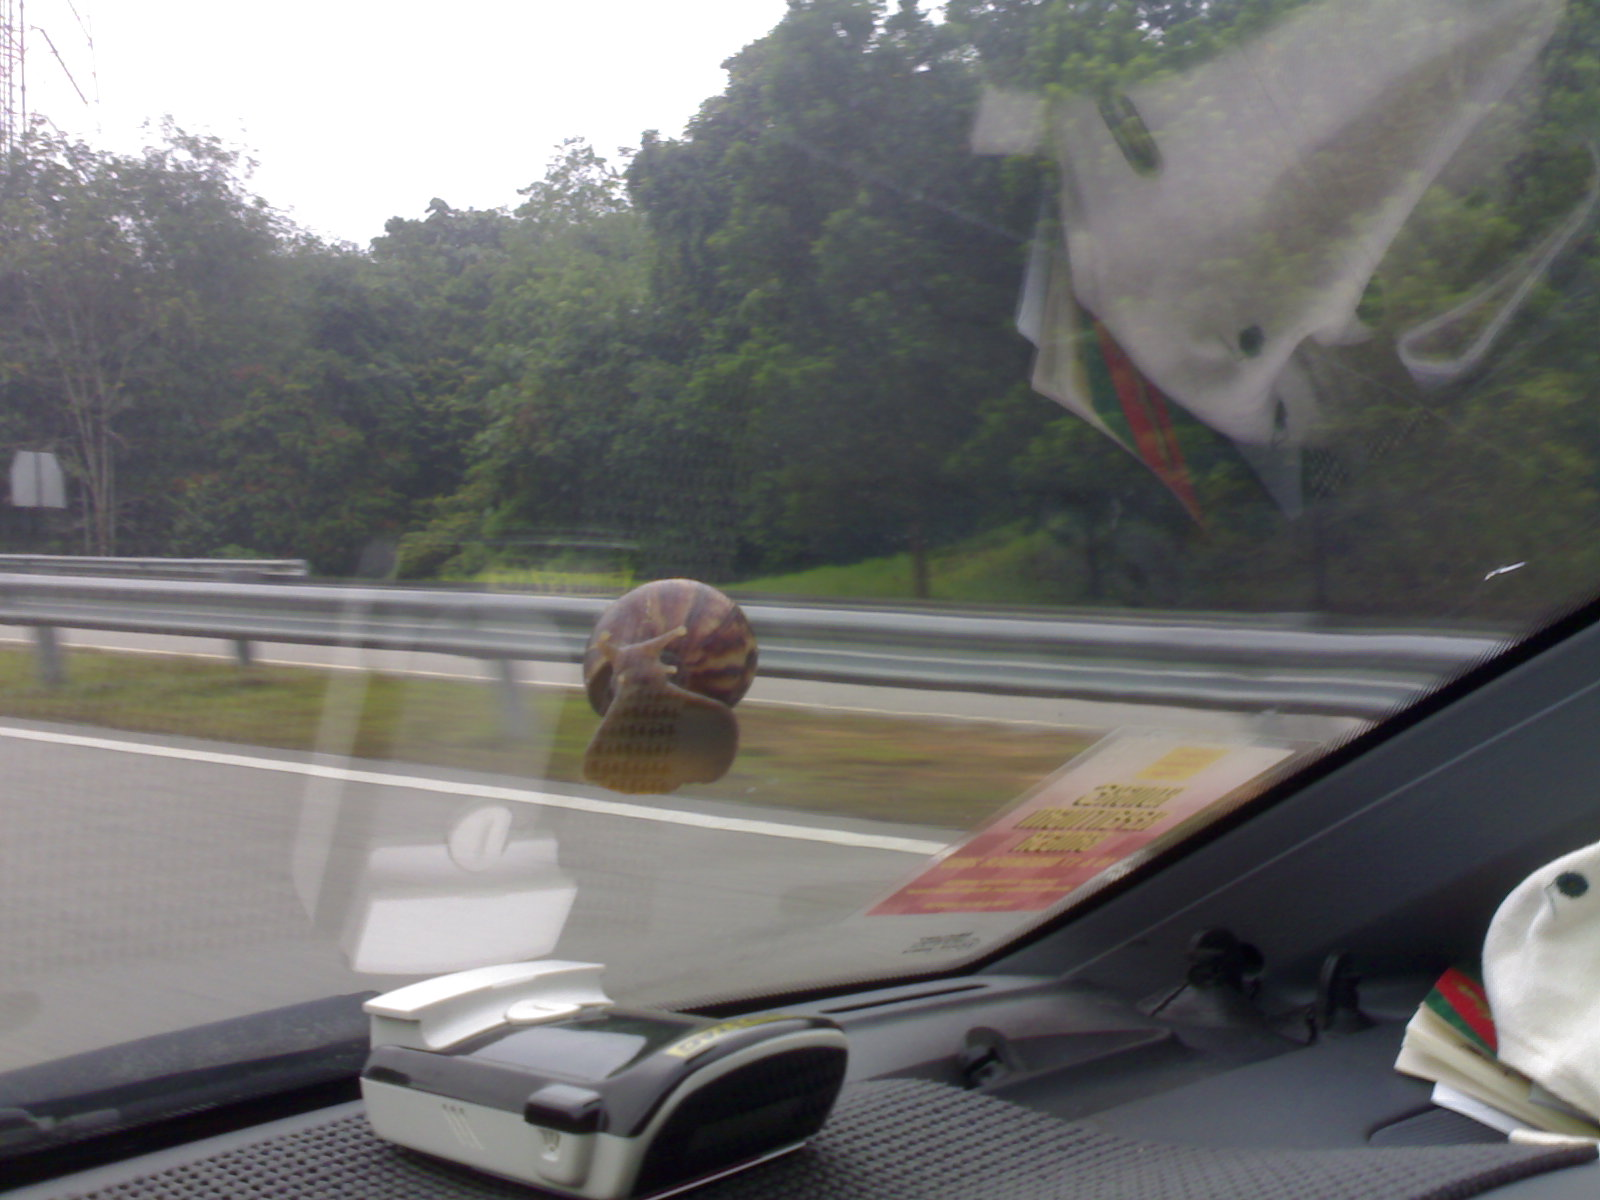 A few minutes later, it moved a few centimetres higher up. I guess it wanted to have a better view of the highway